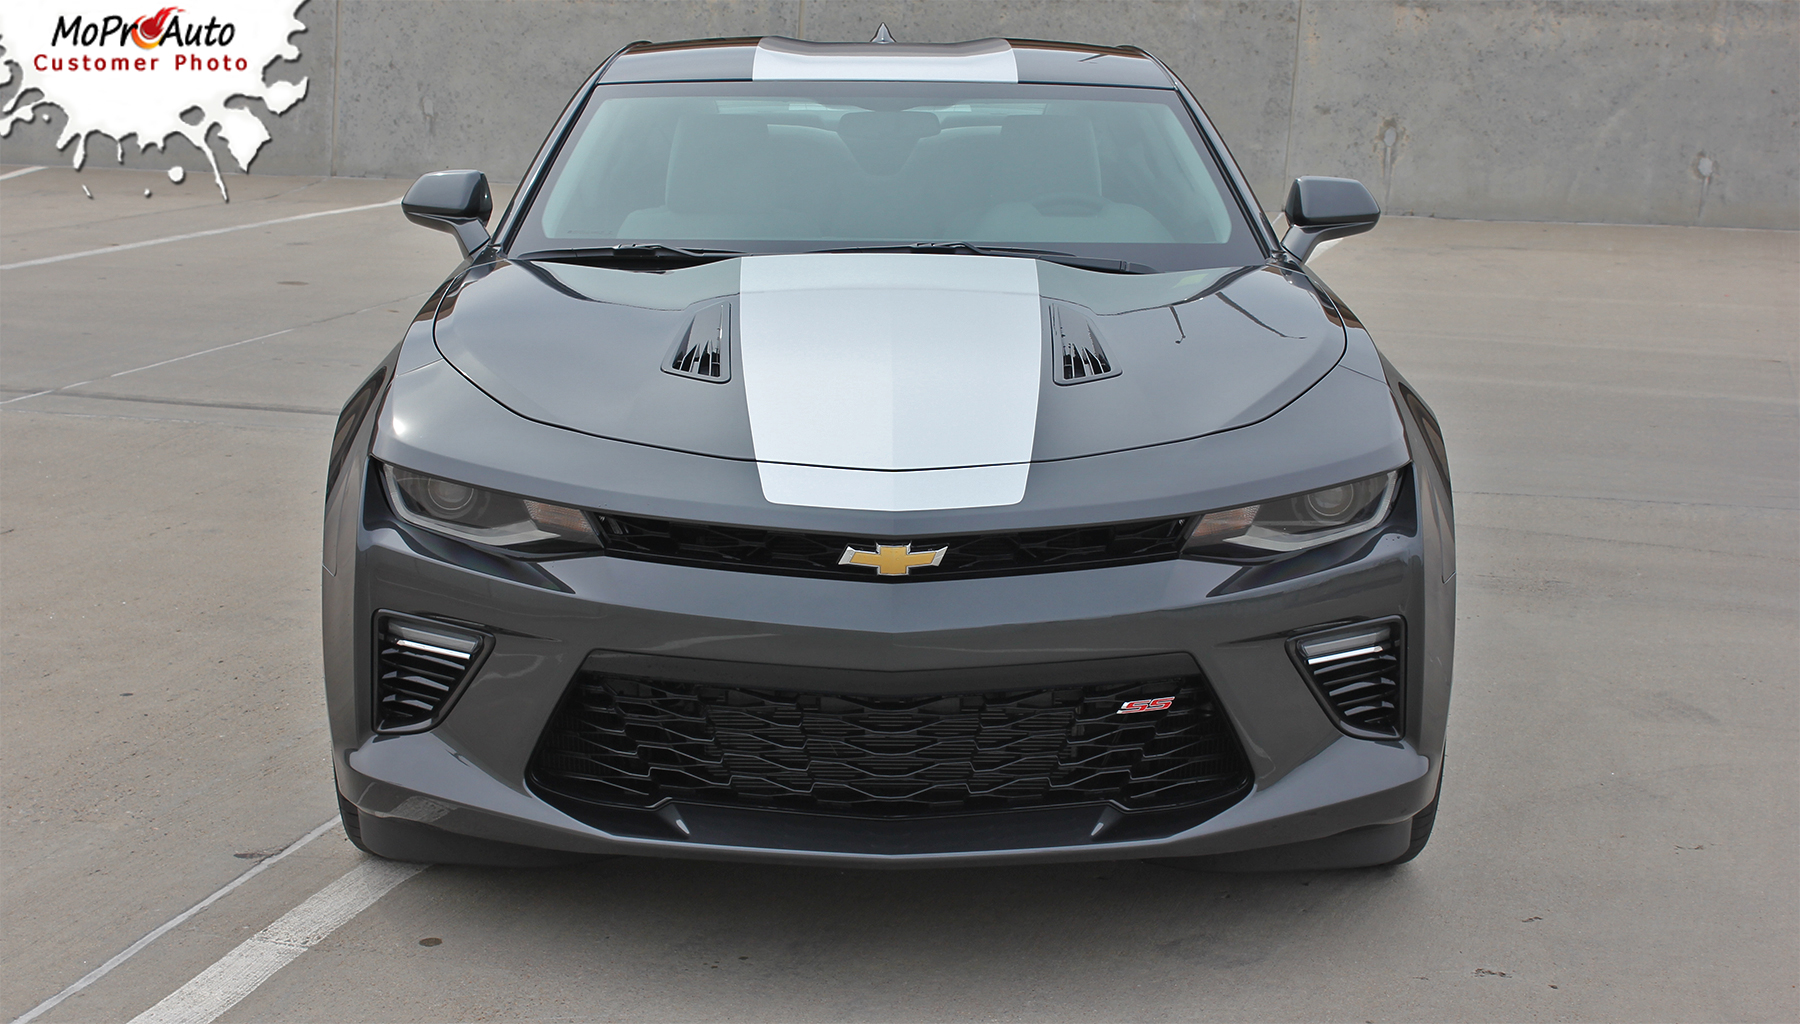 2016 2017 2018 Chevy SS RS Camaro OVERDRIVE Vinyl Graphics Kits, Decals, Stripes